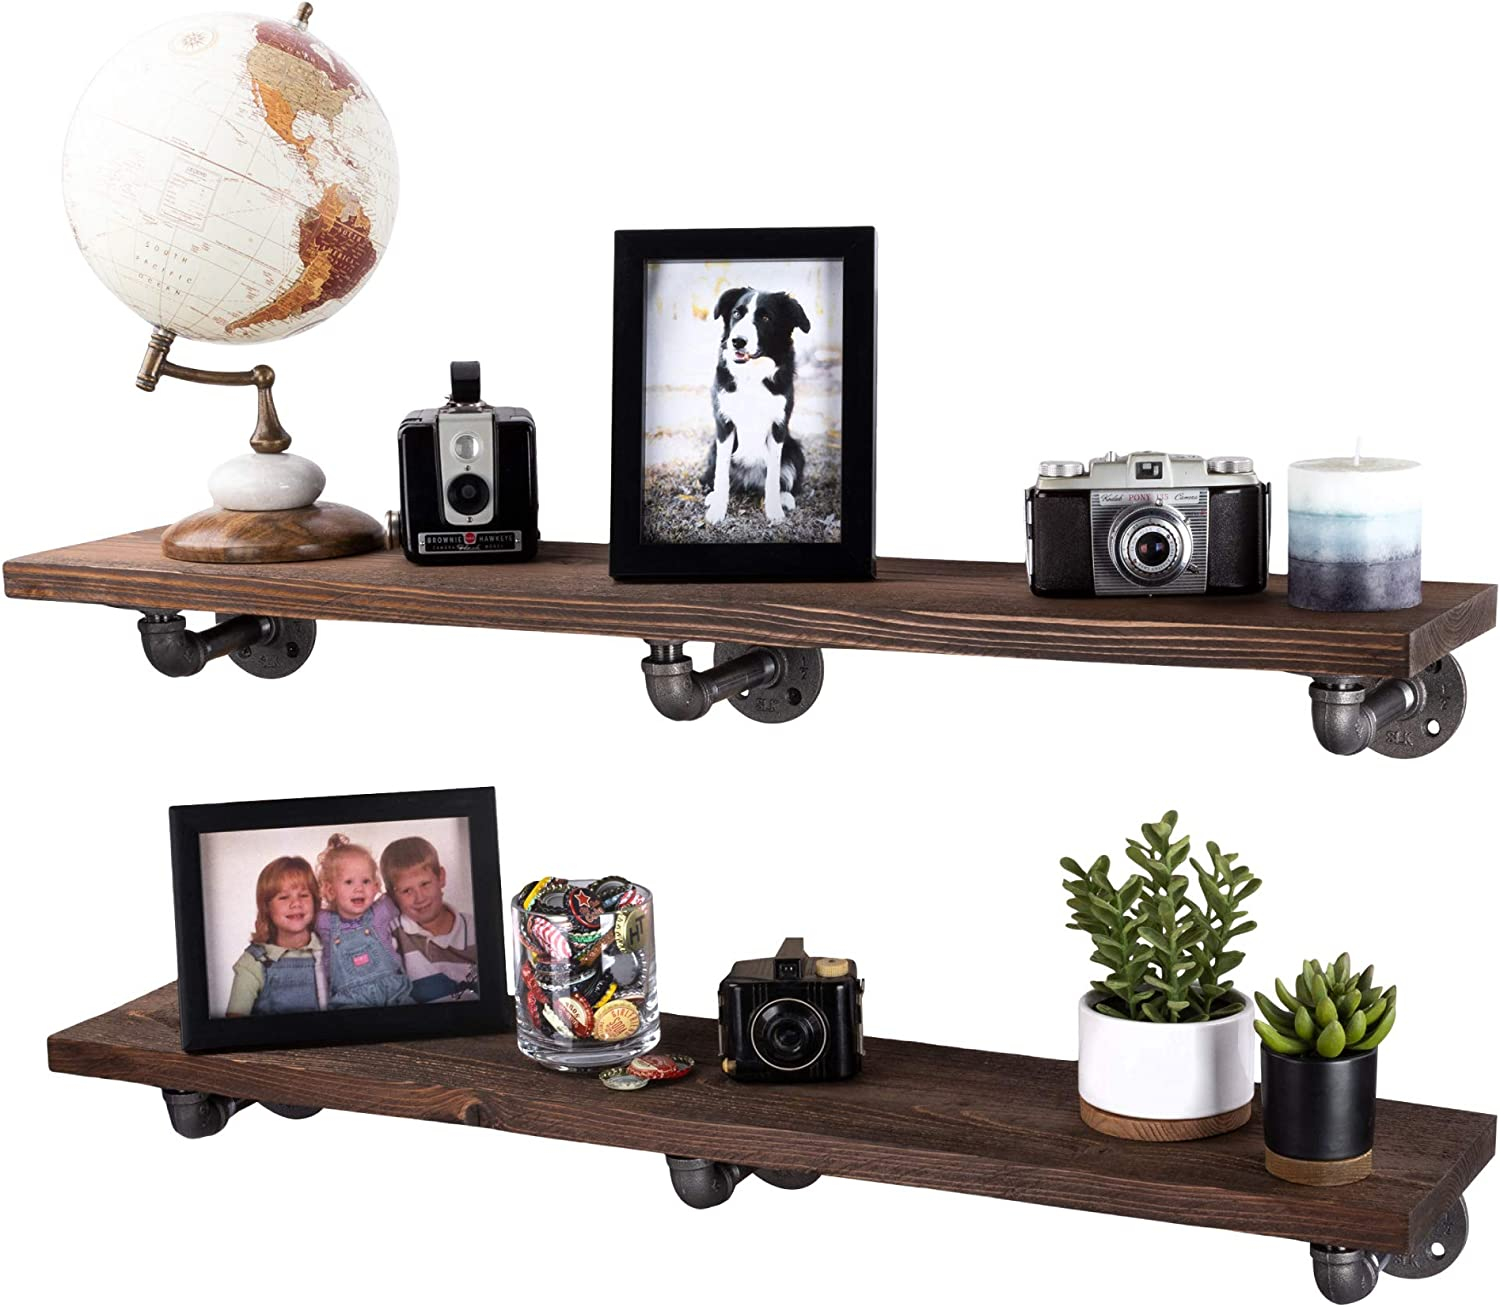 PIPE DÉCOR Industrial Pipe Wooden Shelves Restore Premium Douglas Fir Wood Shelving 36 Inch Length Set of 2 Boards and 6 L Brackets Trail Brown Finish